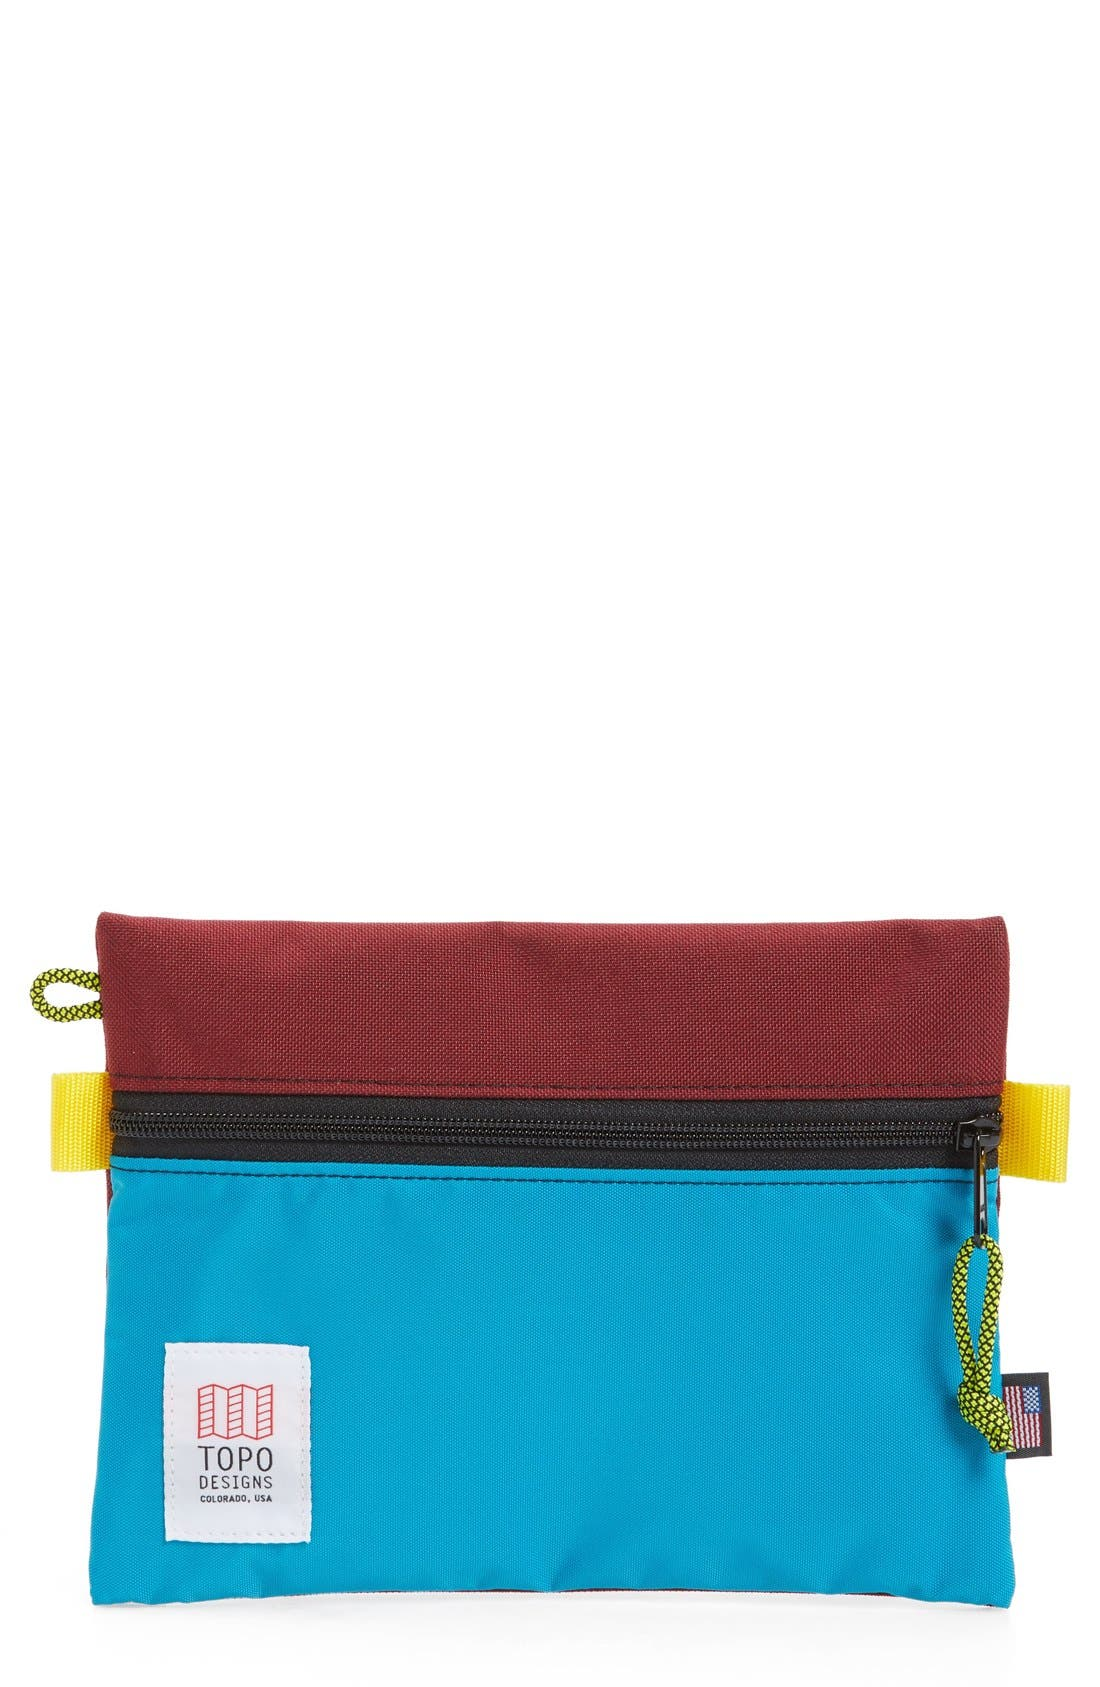 ,                             TopoDesigns Accessory Bag,                             Main thumbnail 1, color,                             BURGUNDY/ TURQUOISE